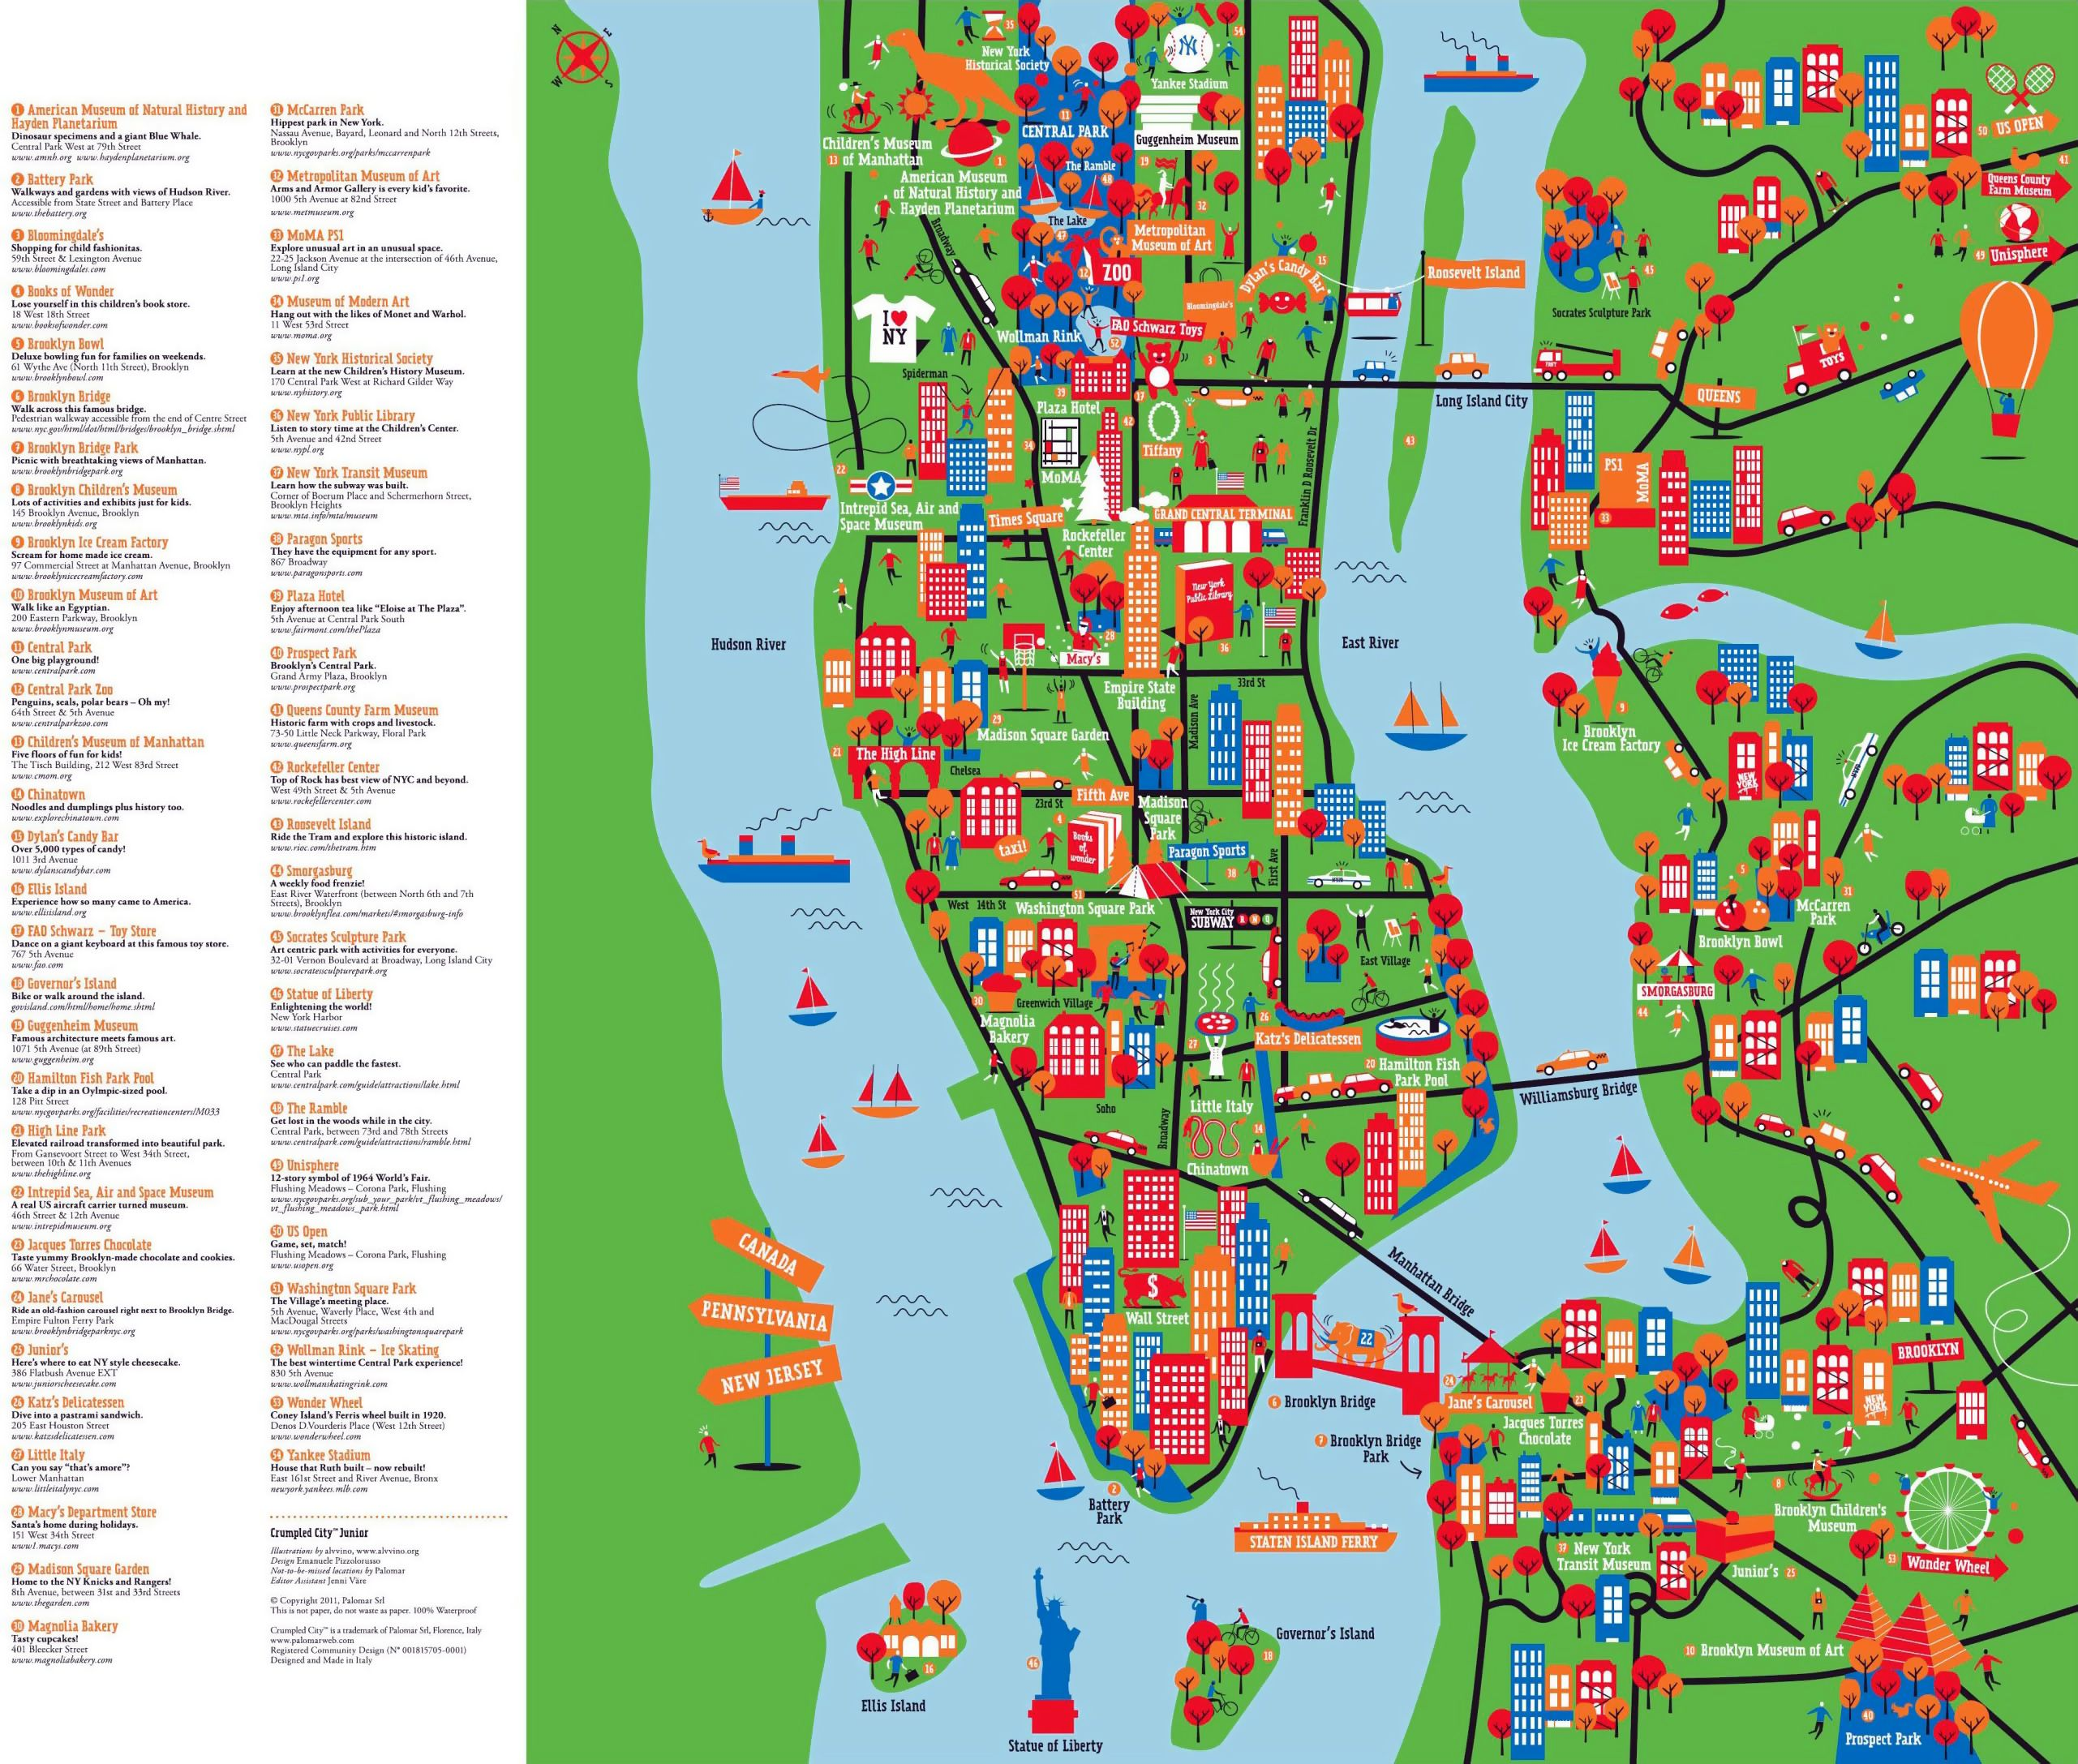 Hotel Map Of New York City.Undefined New York City New York City Attractions Map Of New